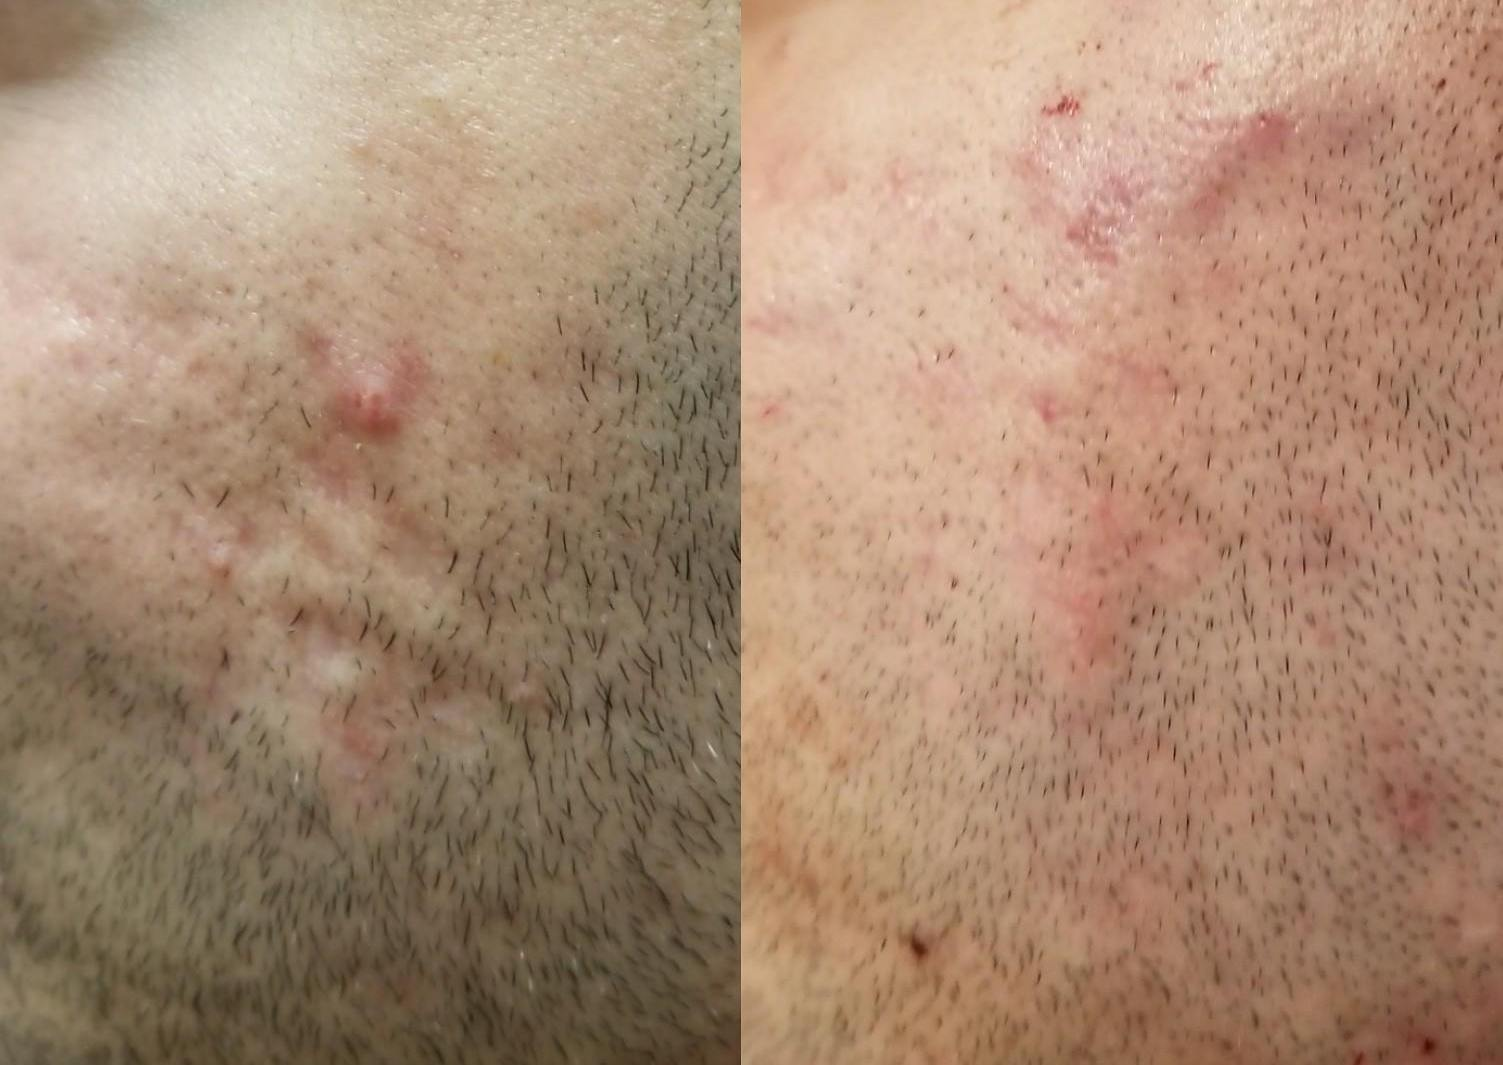 A before and after shot of thread treatment to smooth skin from acne scarring, by Dr. Doris Day.